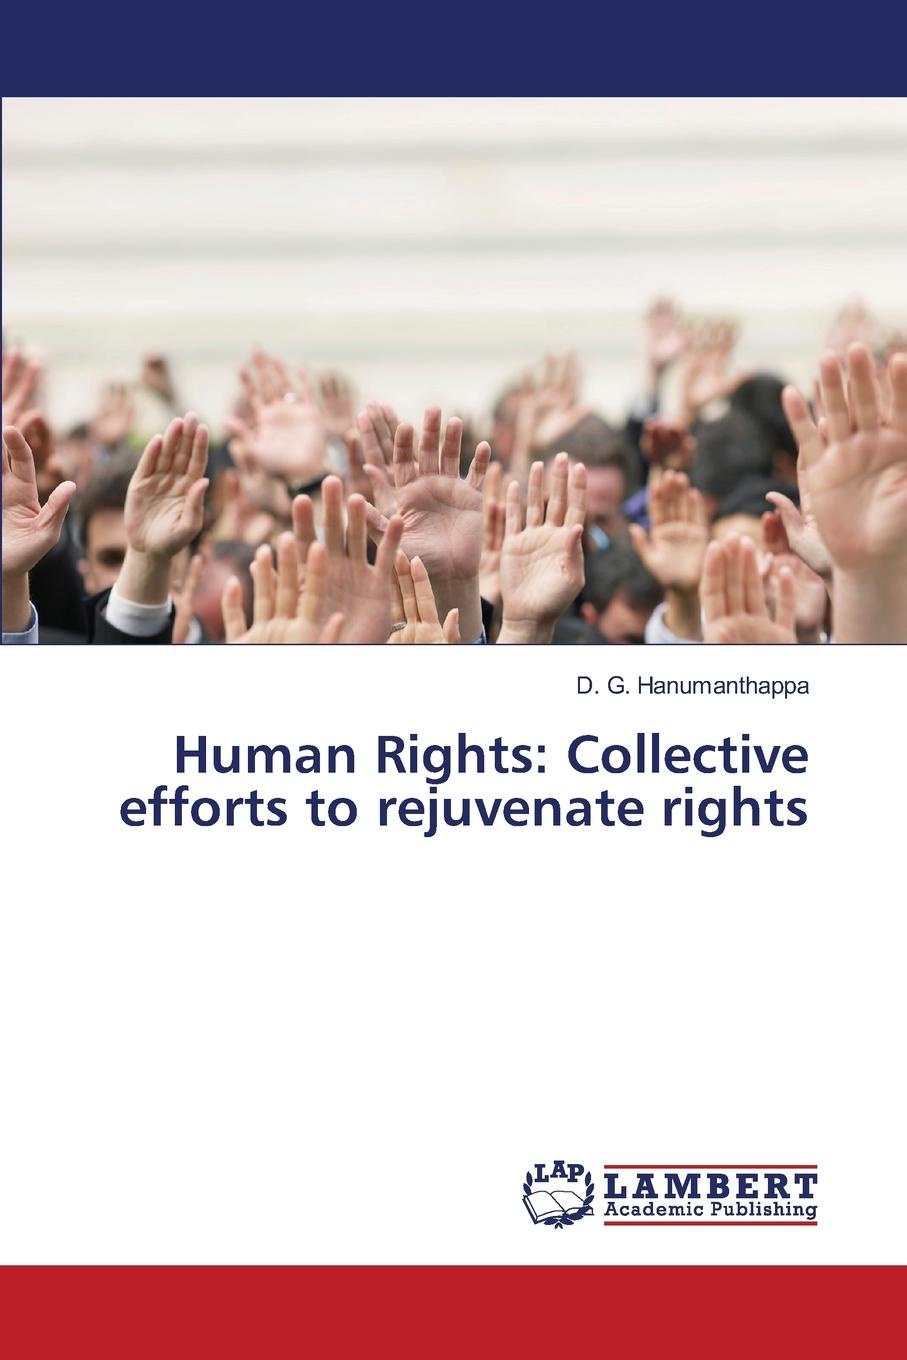 Human Rights. Collective efforts to rejuvenate rights